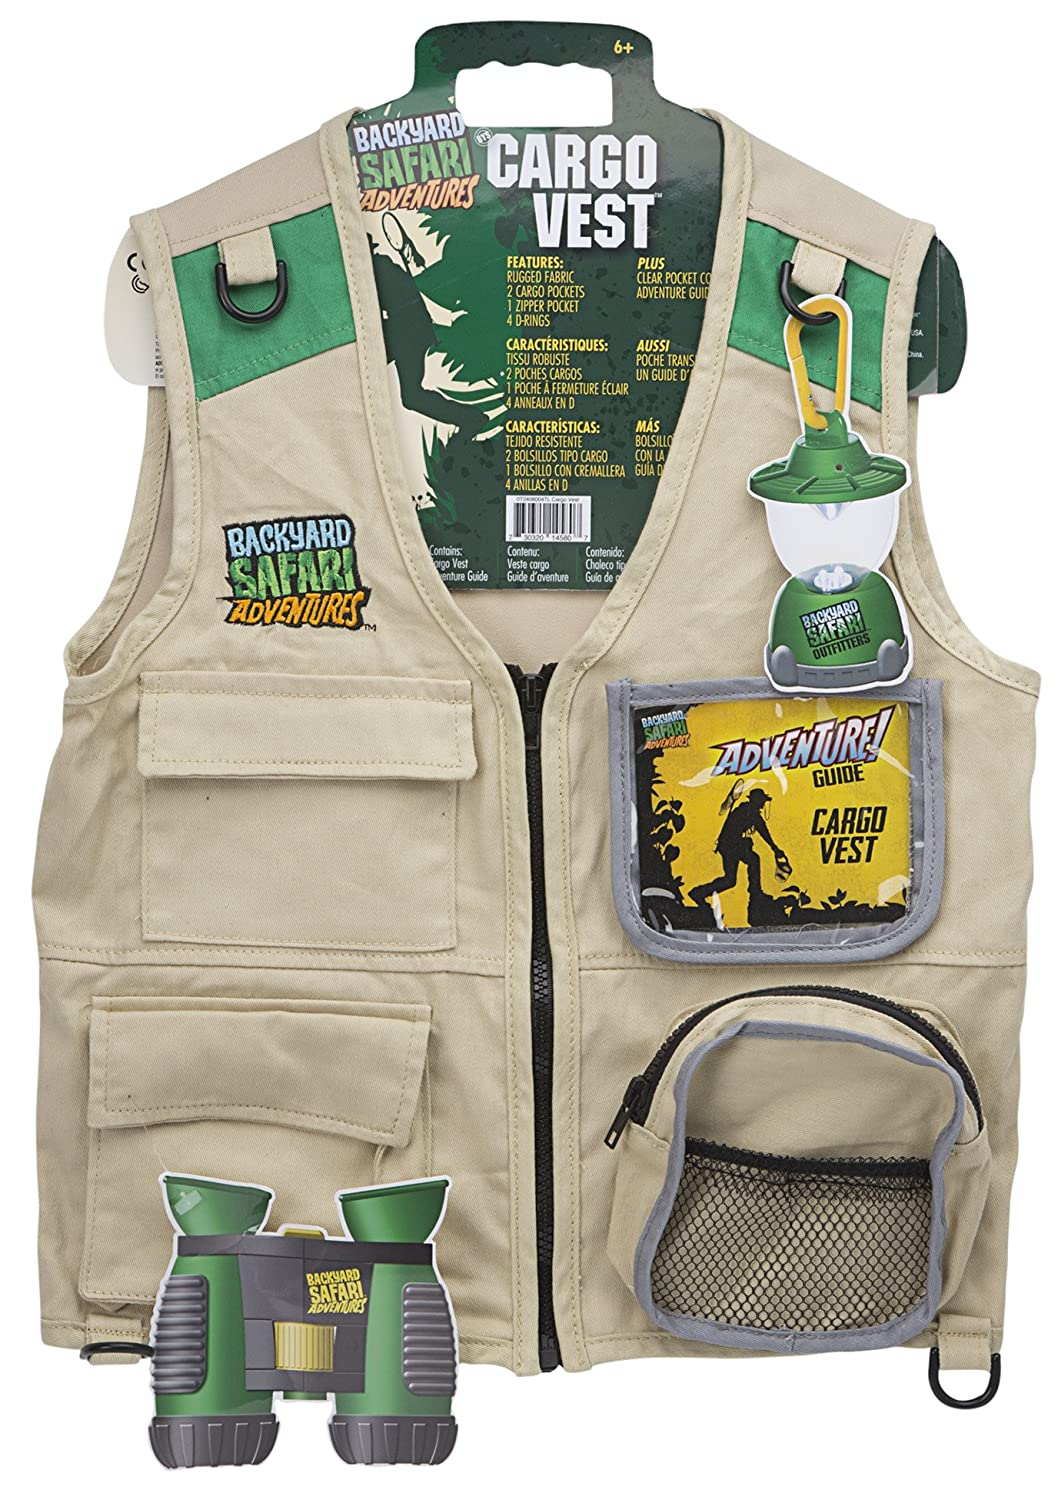 Save 50% off Cargo Vest at Ama...